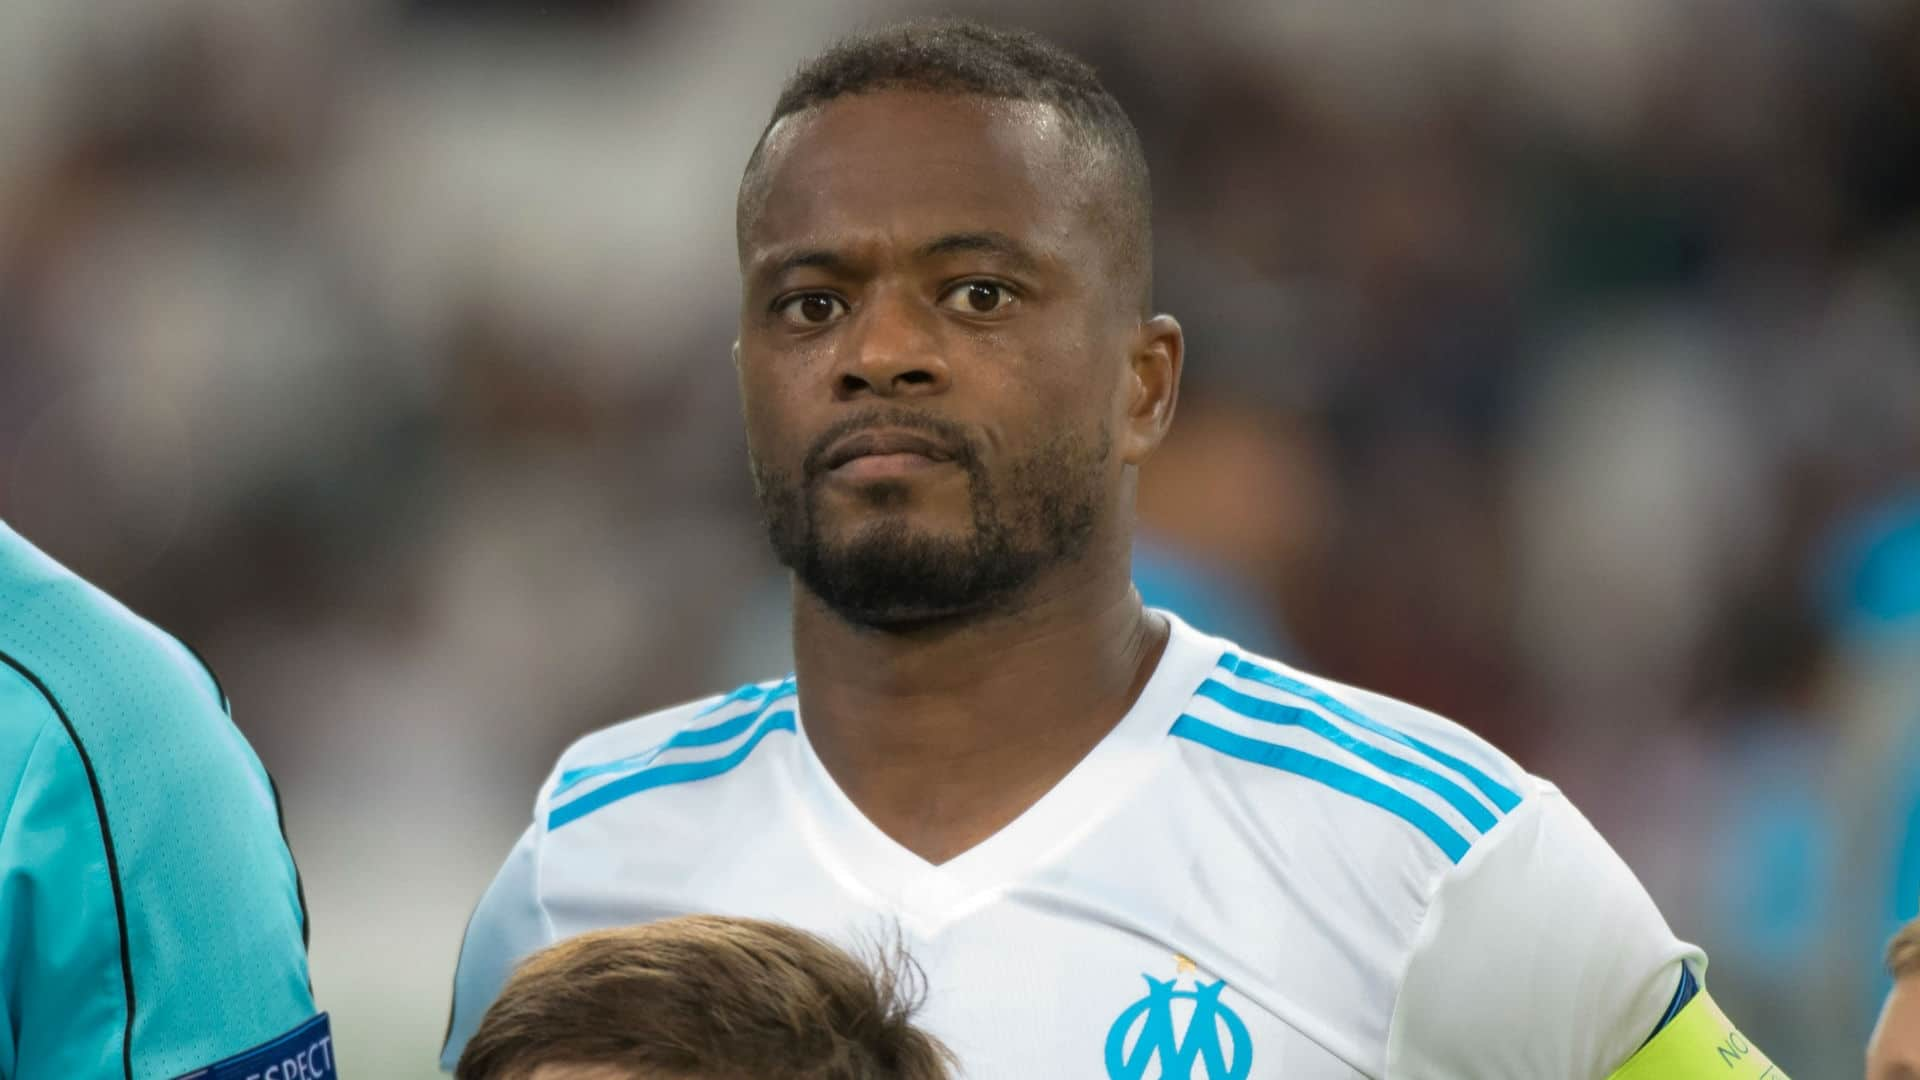 Has Patrice Evra mited career suicide after recent violent